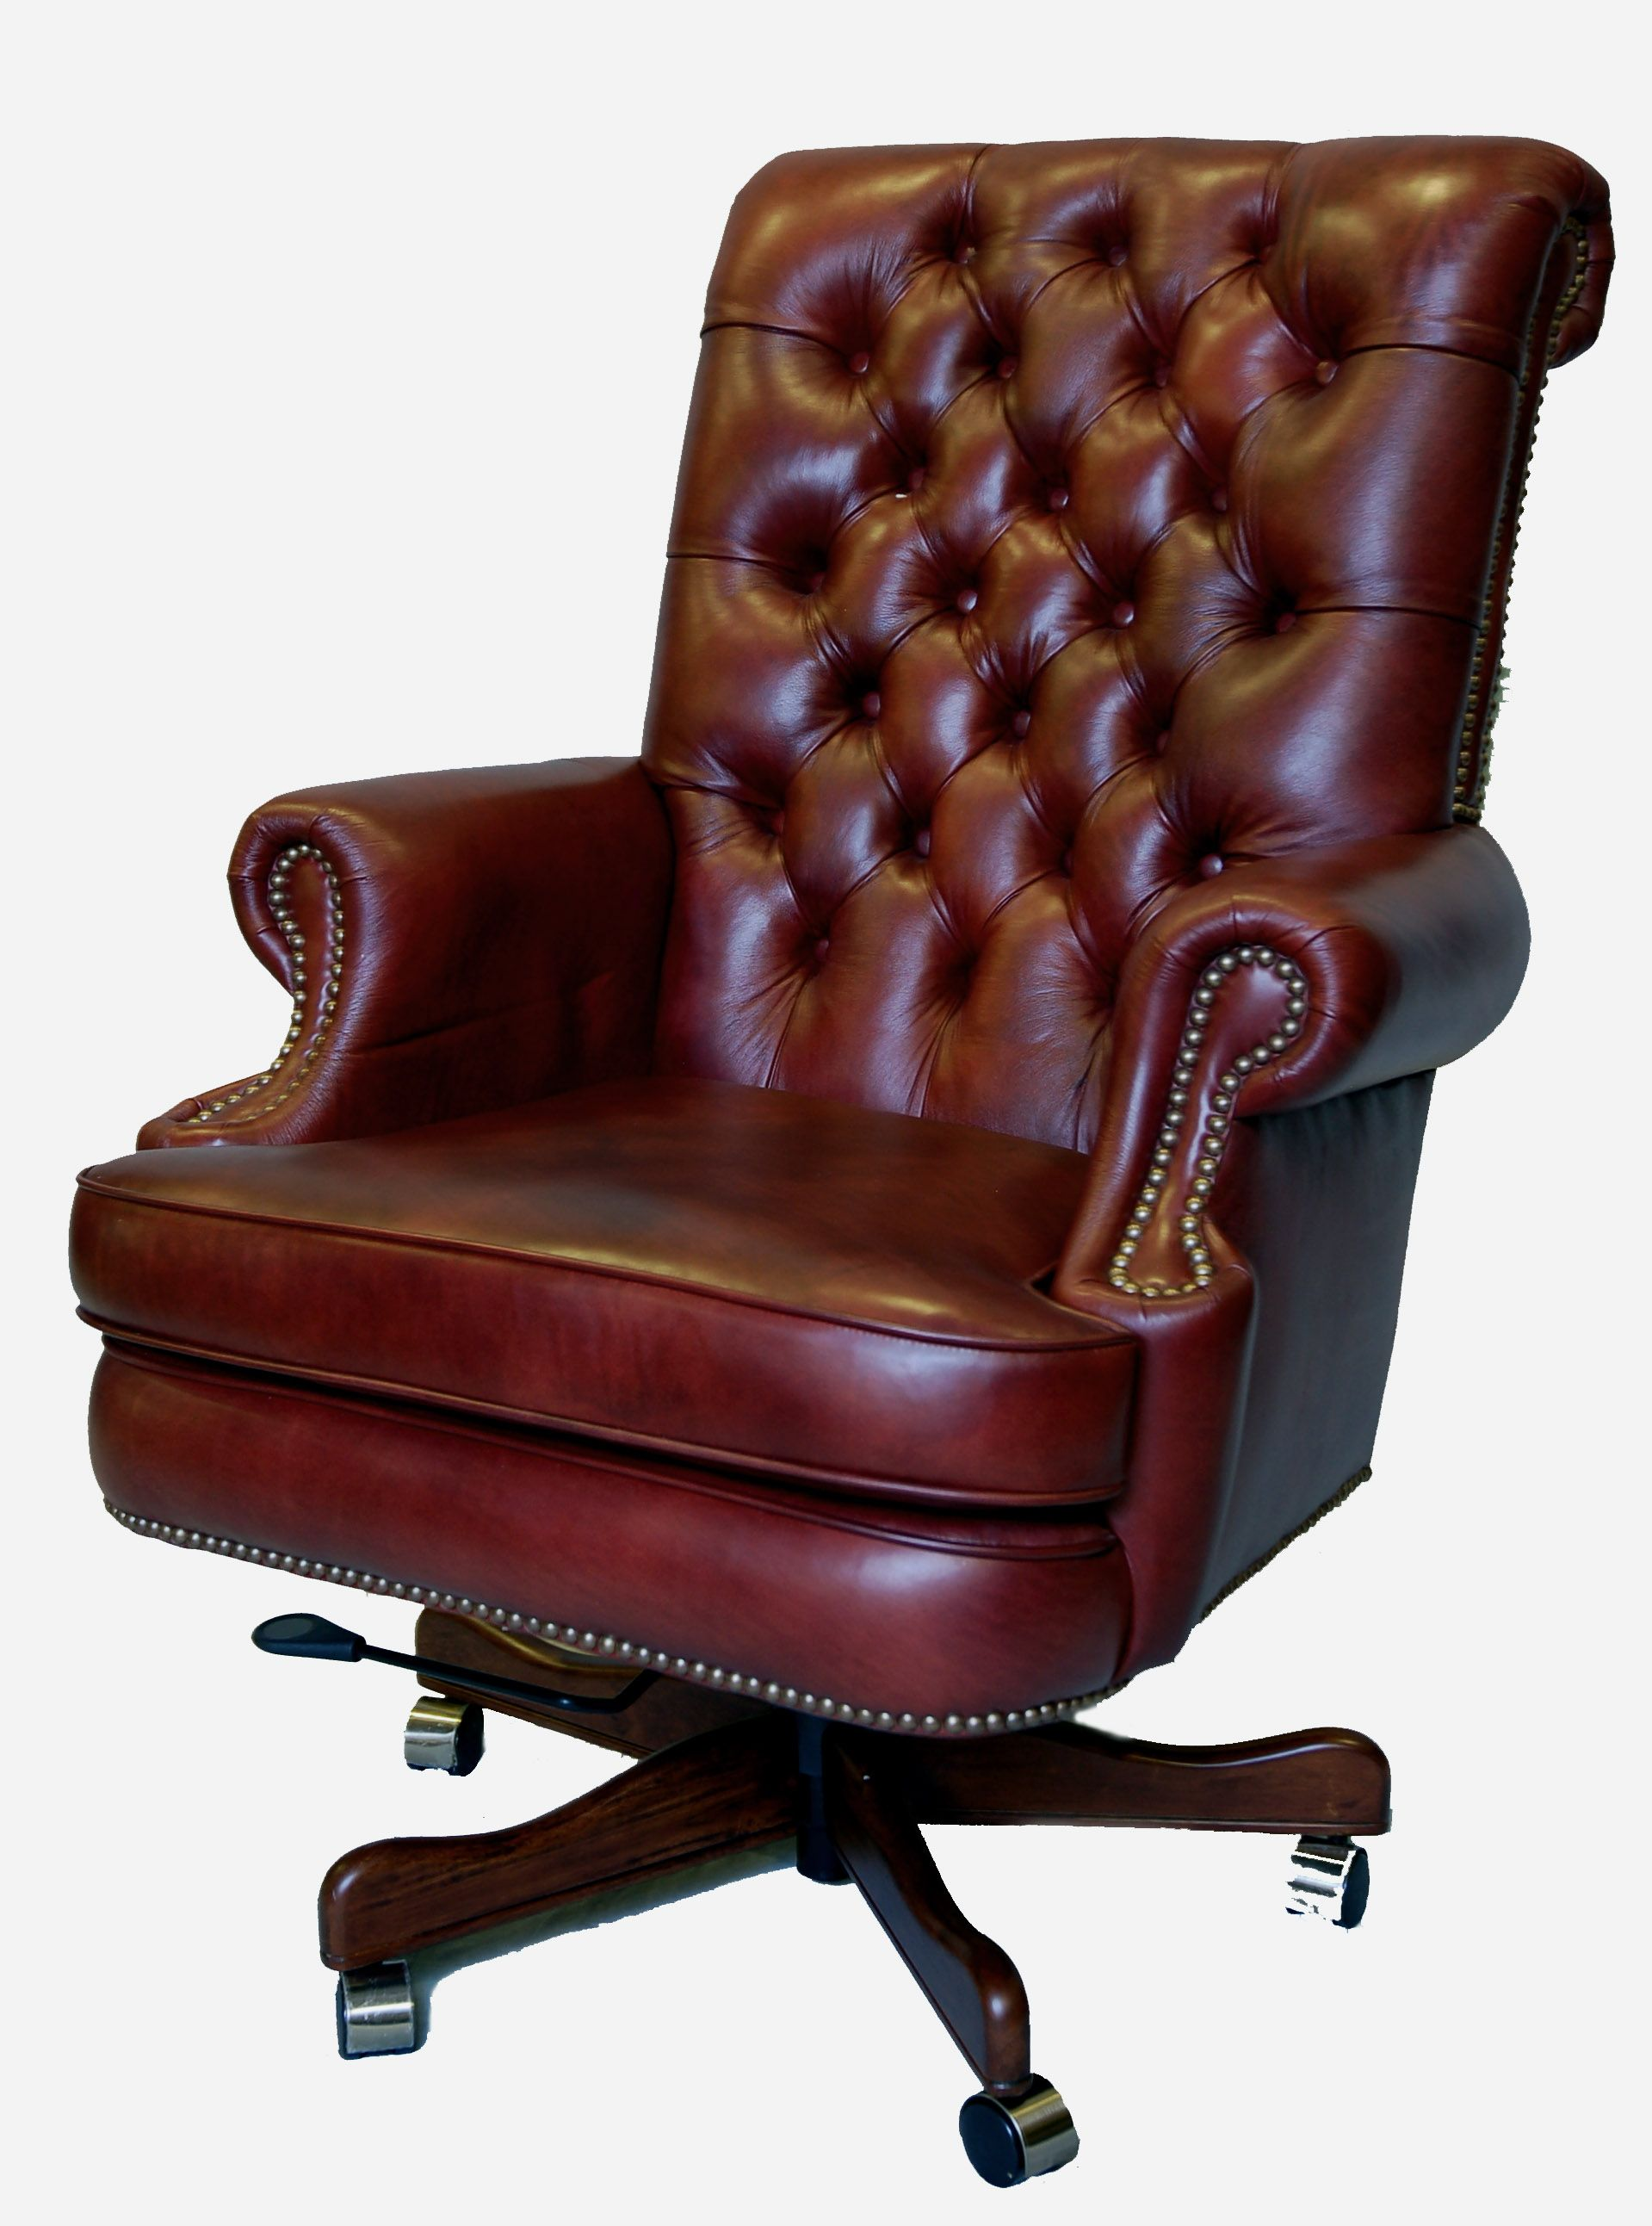 Engaging Office Chair Design Inspiration Featuring Red Vintage Classic  Office Chair With Button Tufted Backrest Design Also Varnished Wooden Office  Chair ...